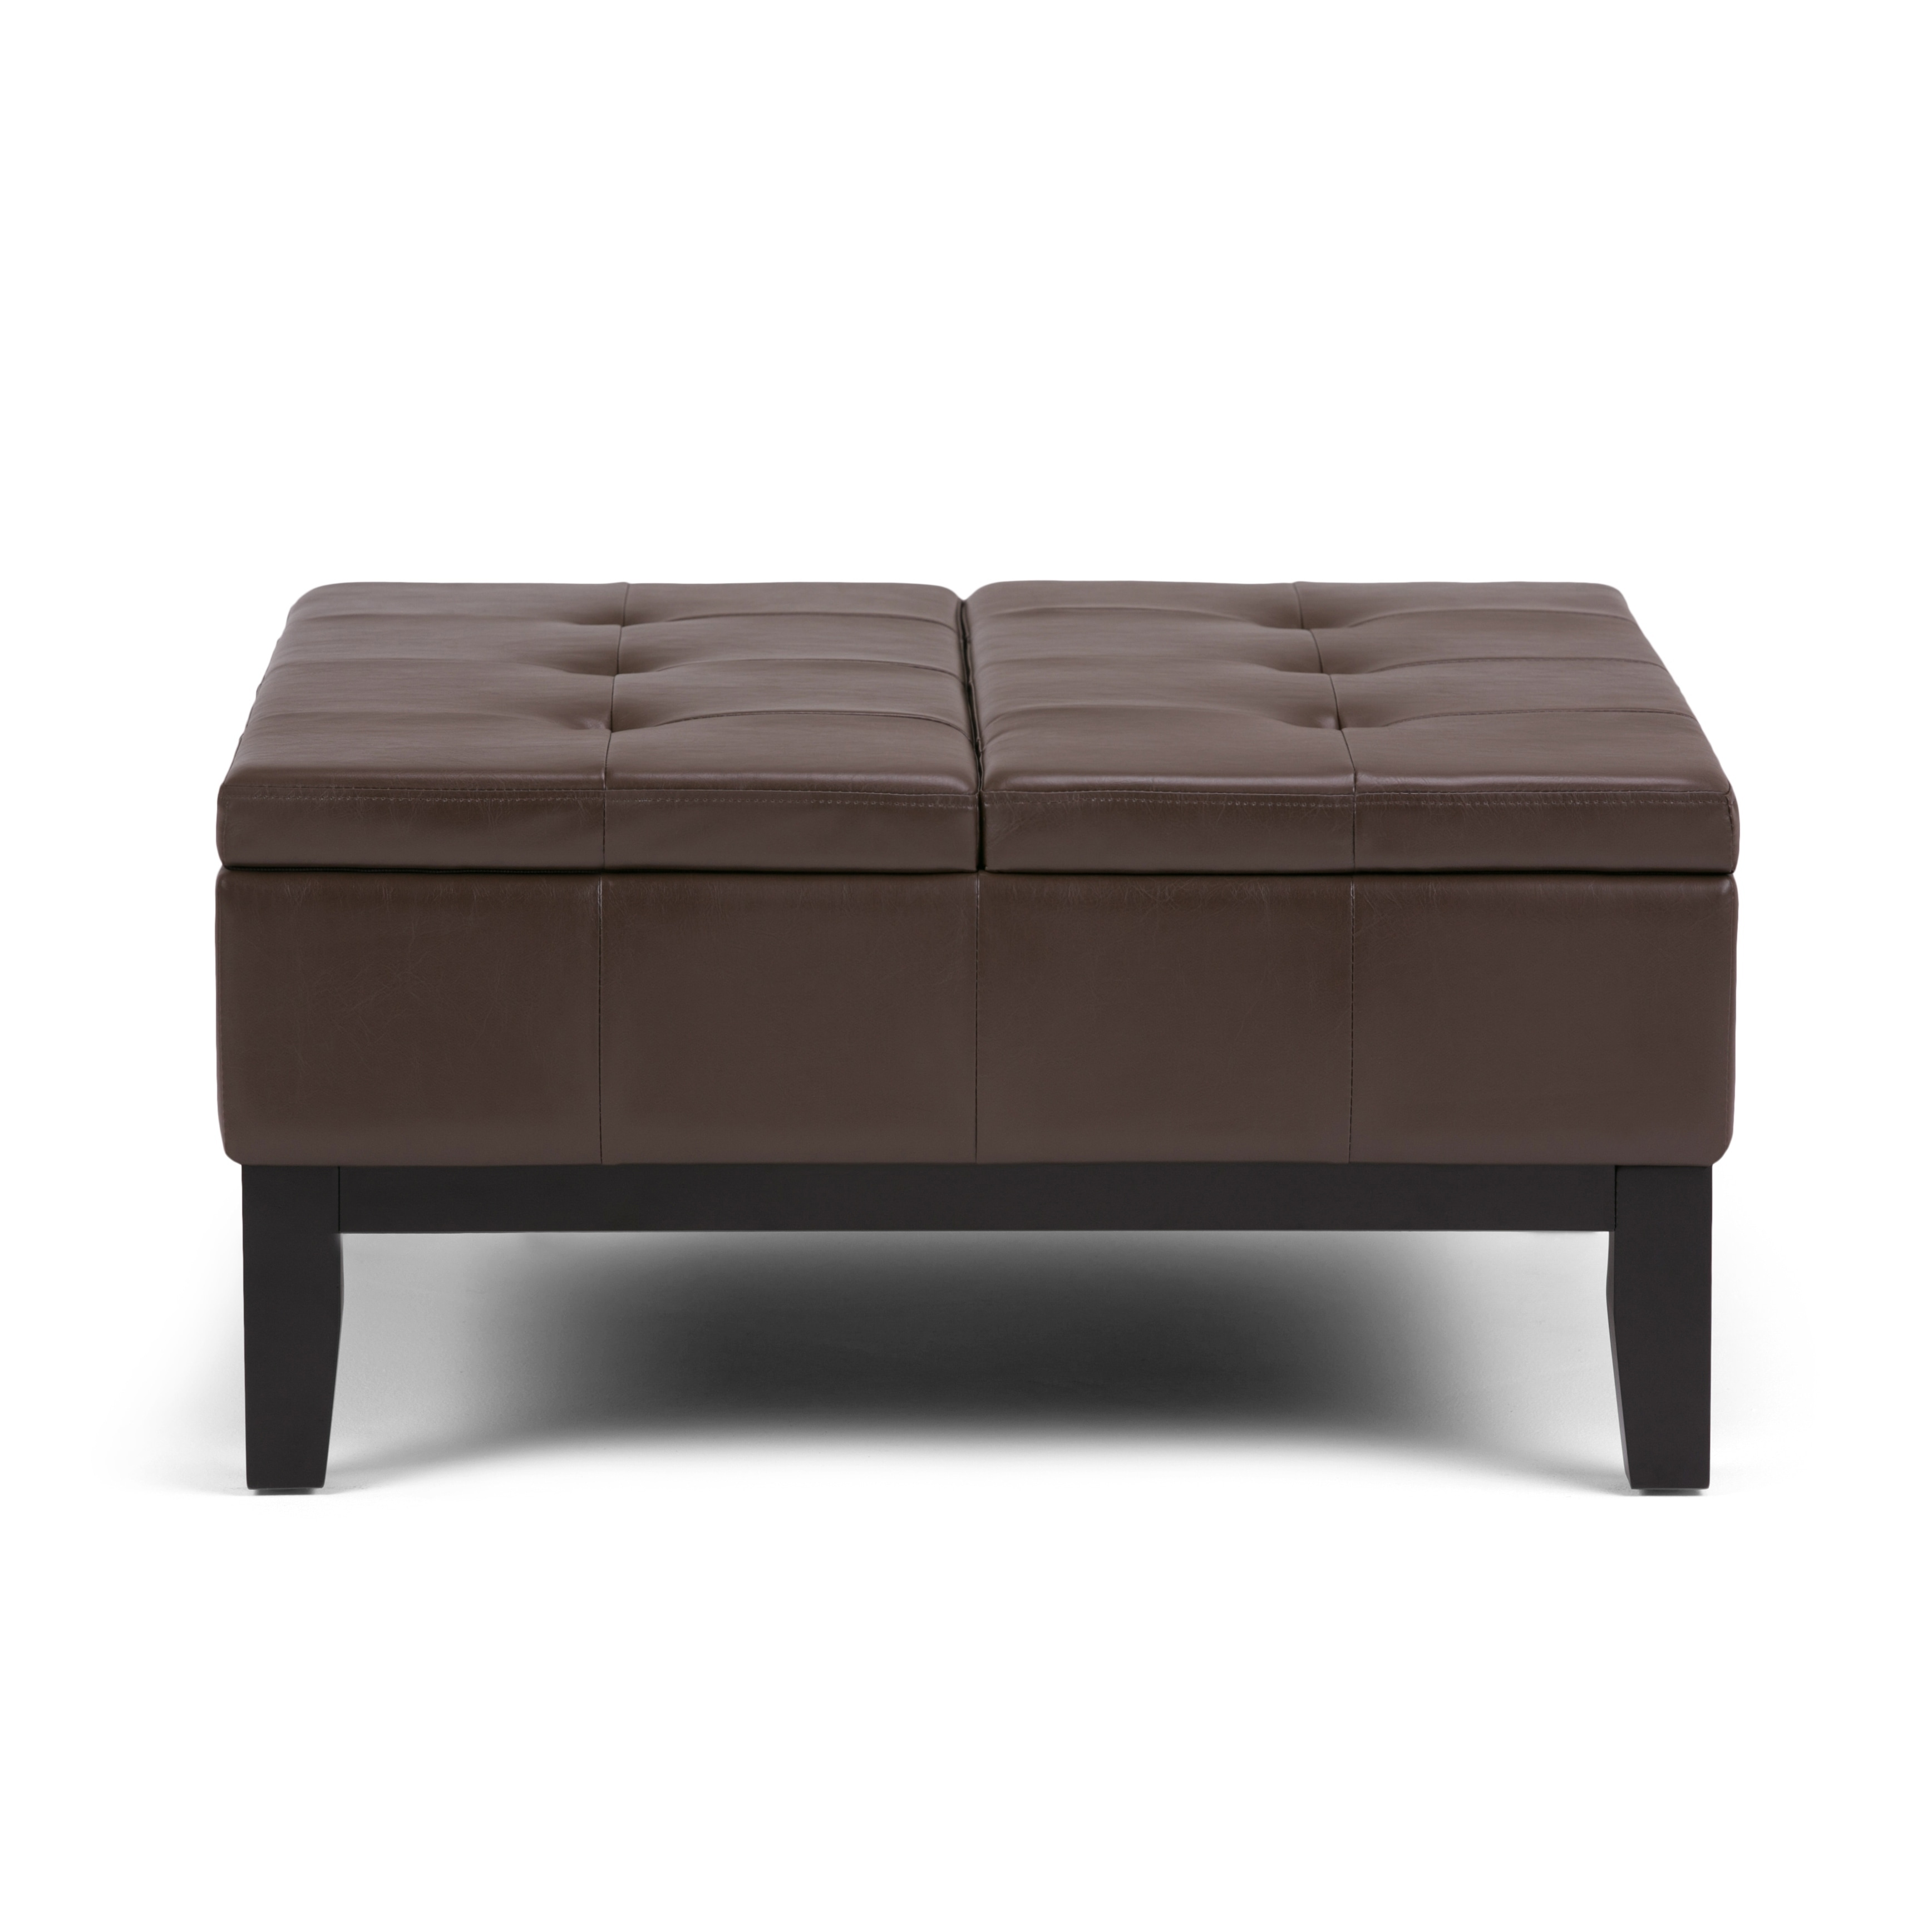 WYNDENHALL Lancaster Square Coffee Table Ottoman and Split lift